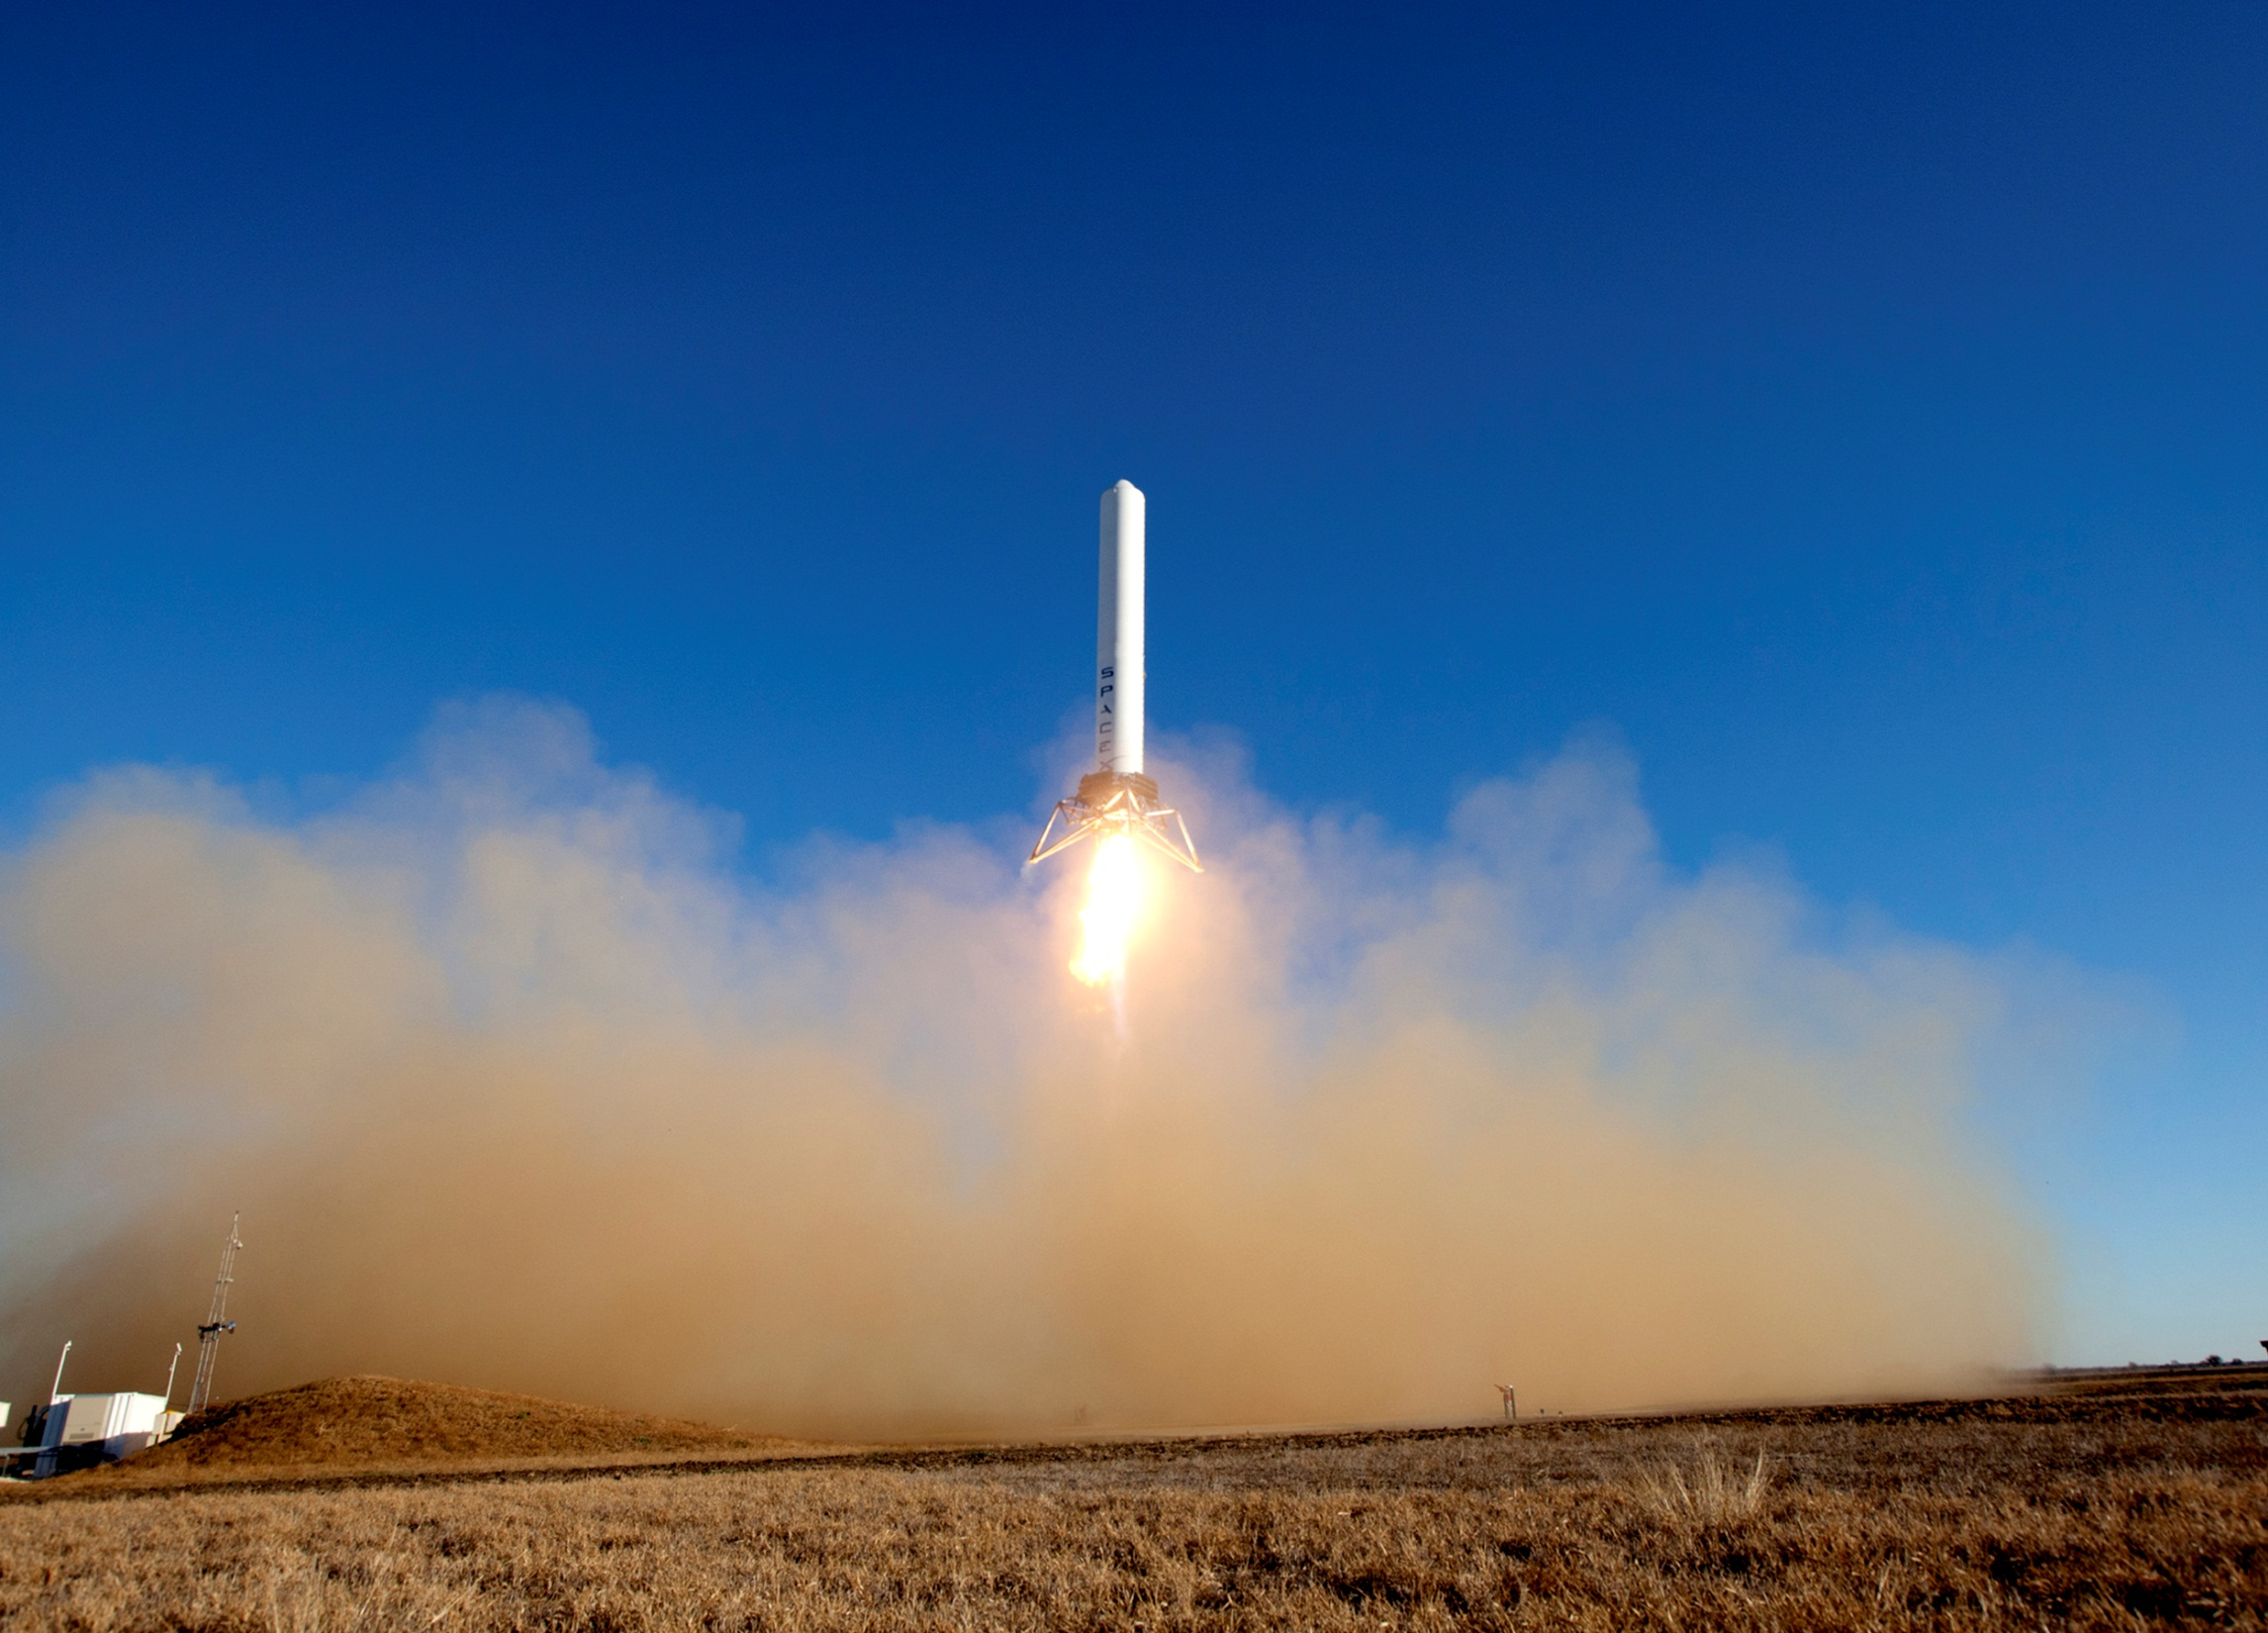 SpaceX's Grasshopper: Dec. 17, 2012